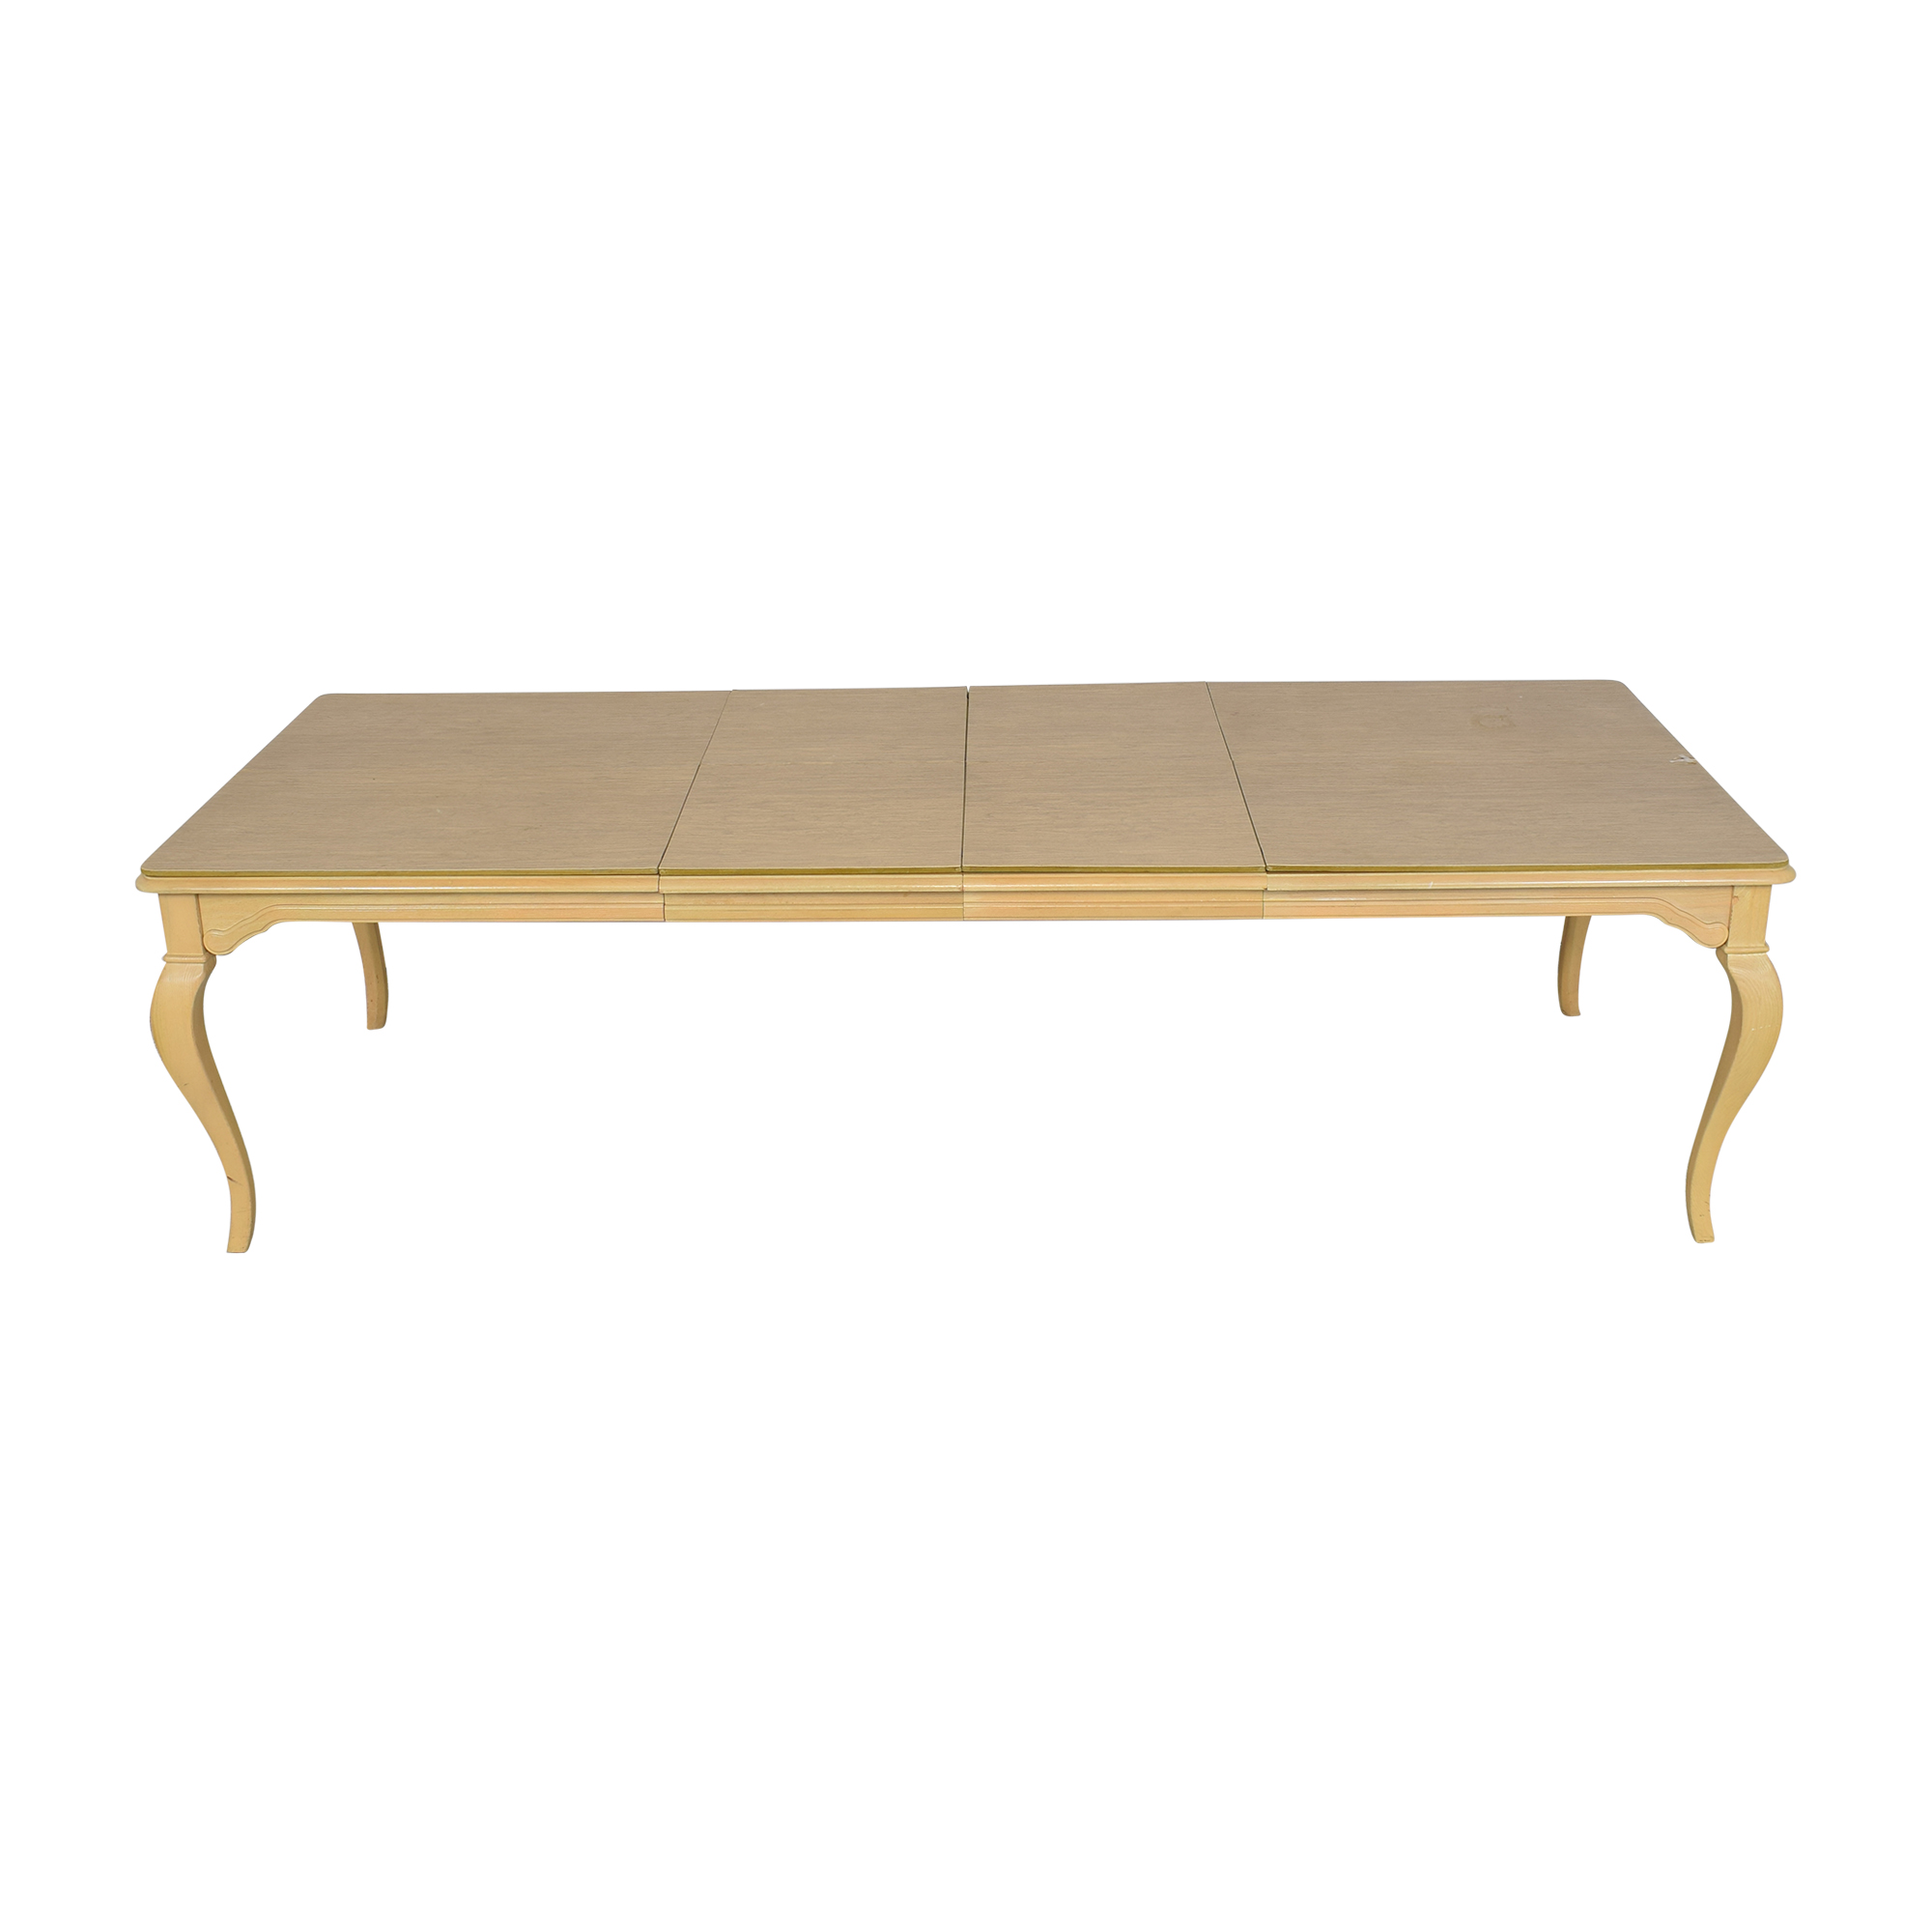 Thomasville Thomasville Extending Cabriole Dining Table on sale